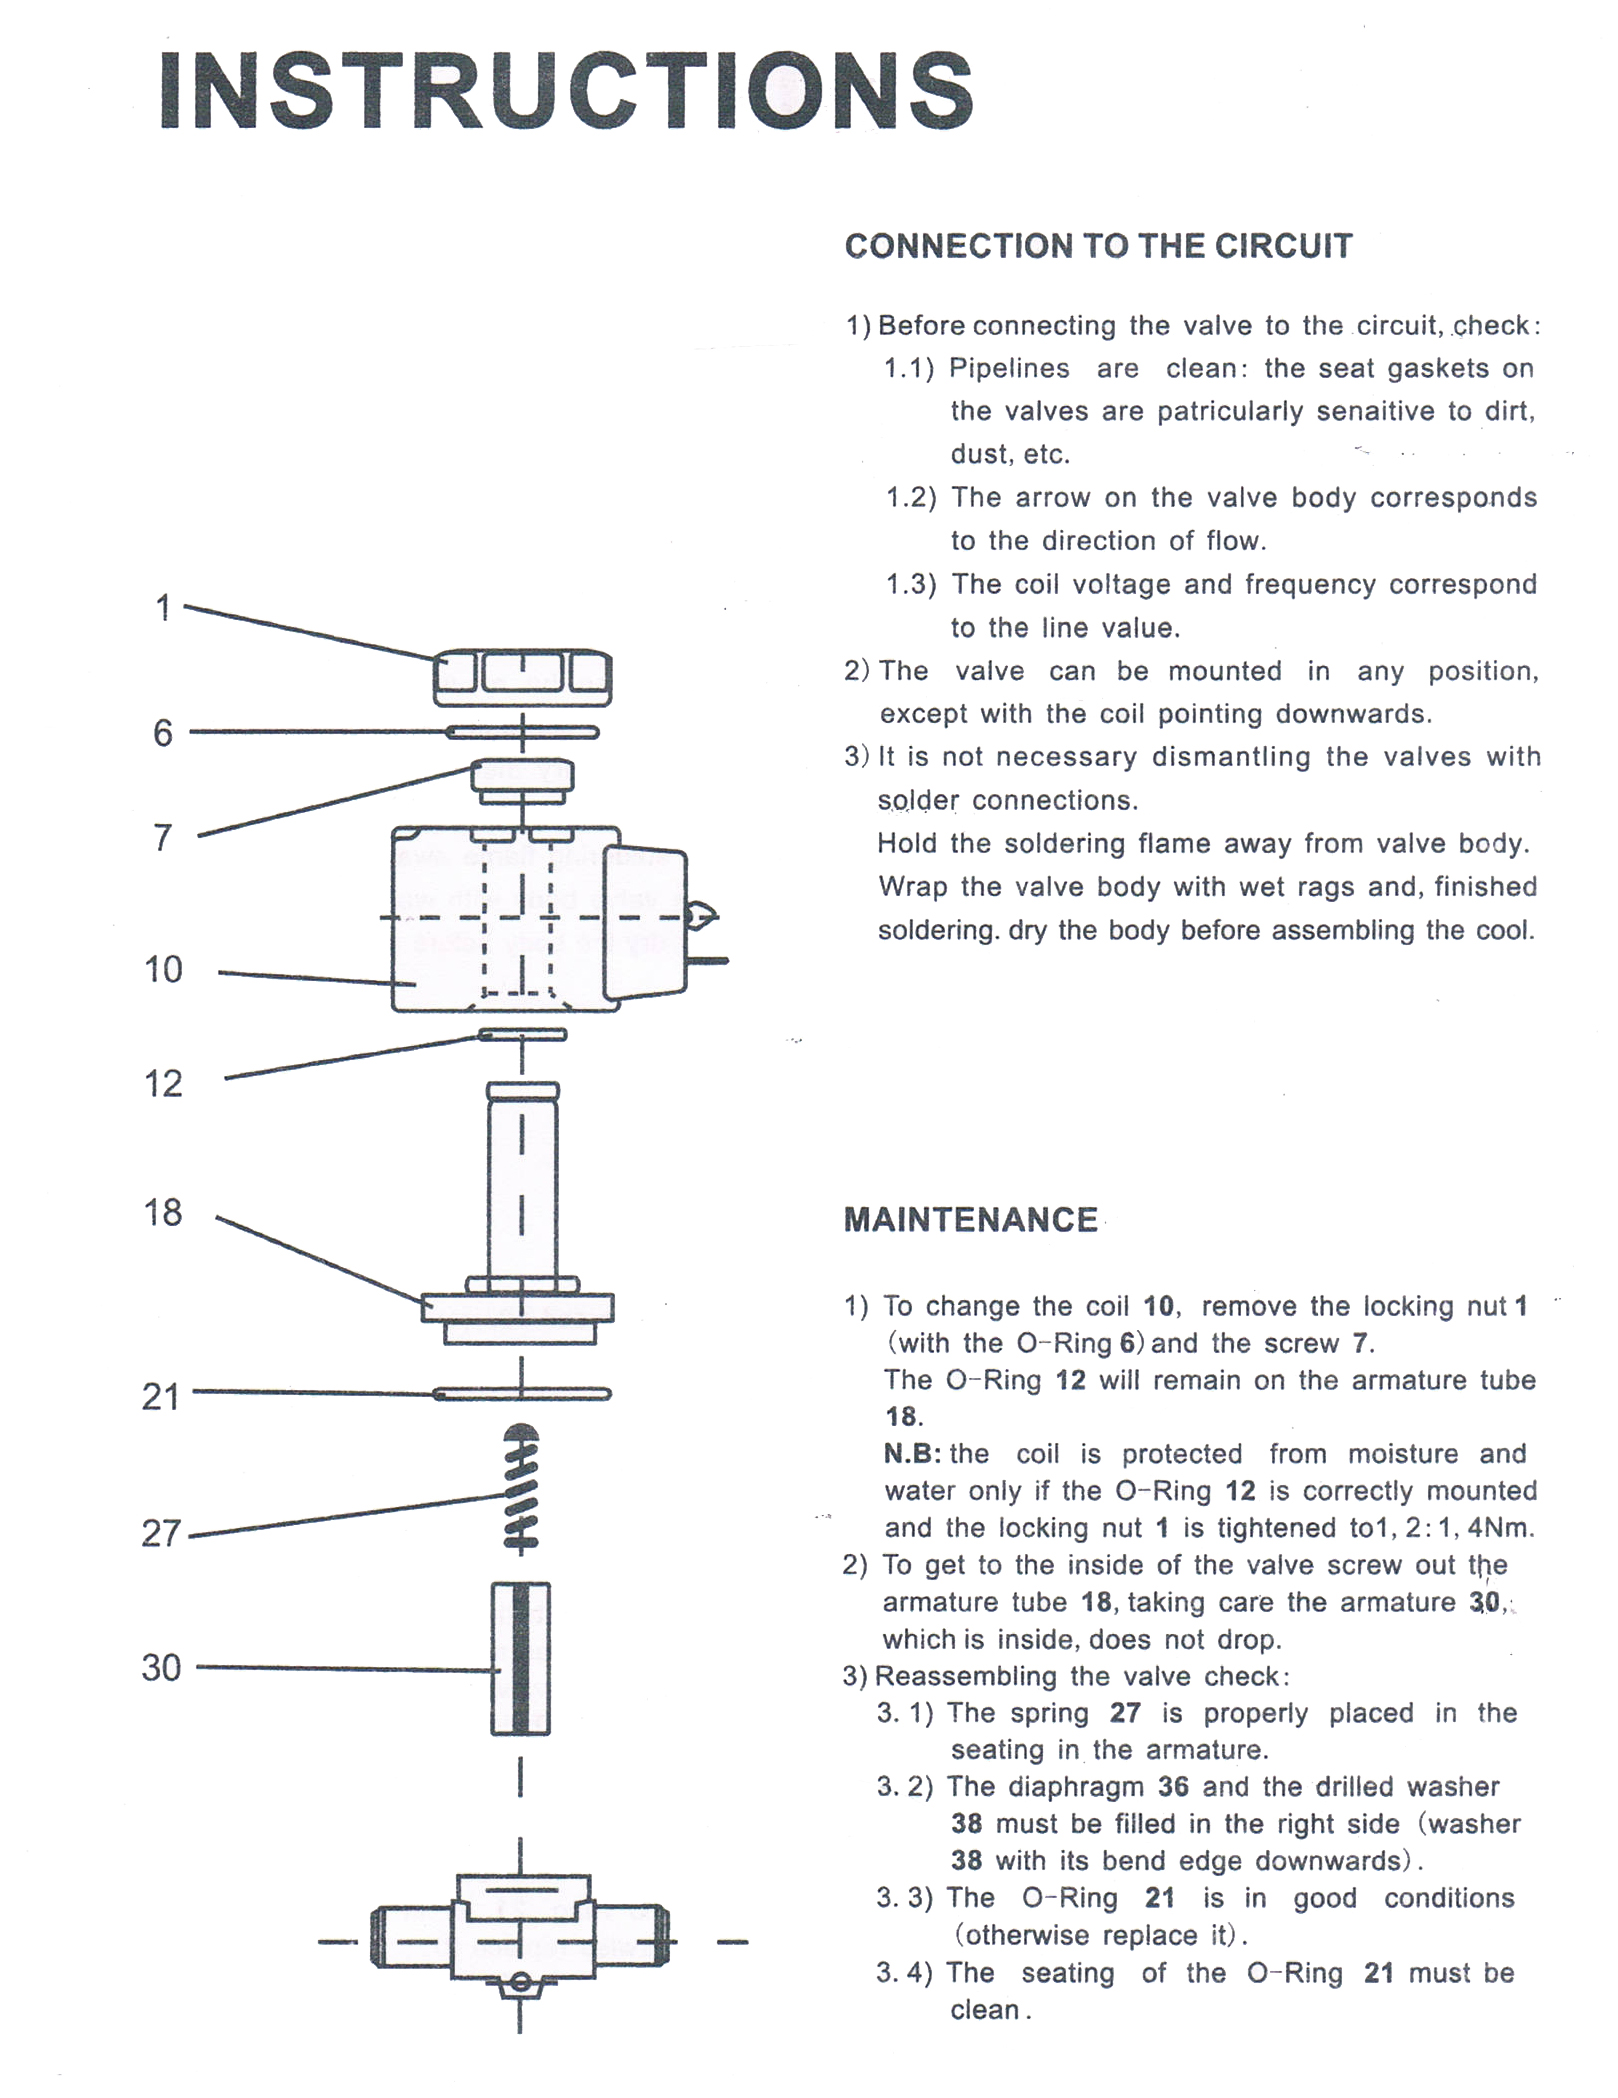 Instructions of MSV-1090/6 SAE Connection Refrigeration Solenoid Valve to control R12,R22;R134a,R410,R404